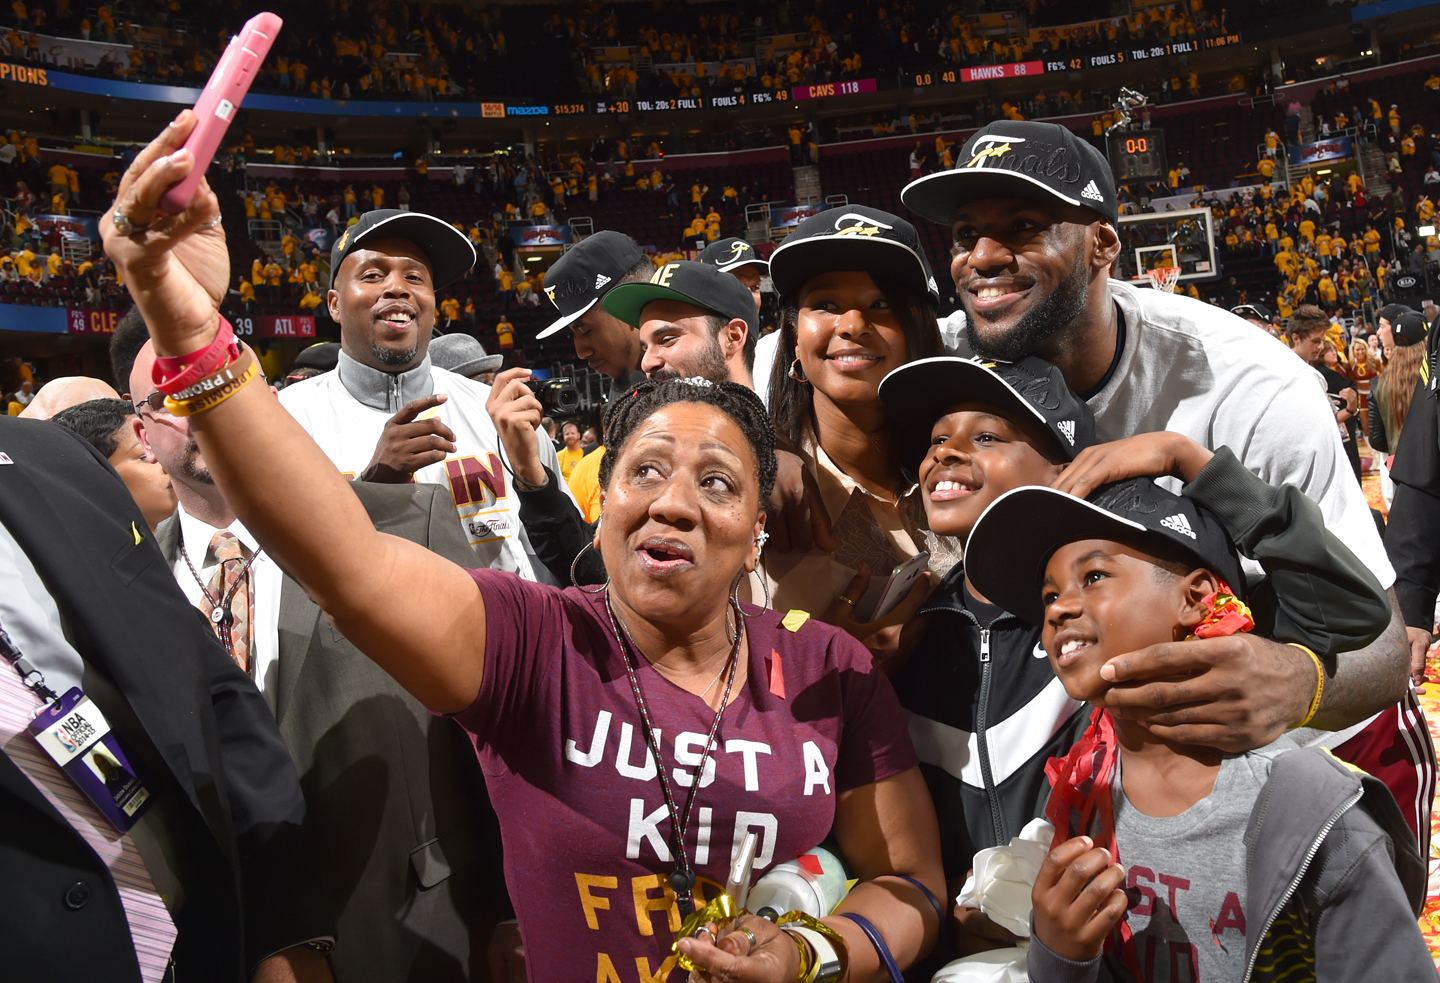 LeBron James #23 of the Cleveland Cavaliers takes a selfie with his family after winning game four against the Atlanta Hawks at the Quicken Loans Arena During Game Four of the Eastern Conference Finals during the 2015 NBA Playoffs on May 26, 2015 in Cleveland,Ohio